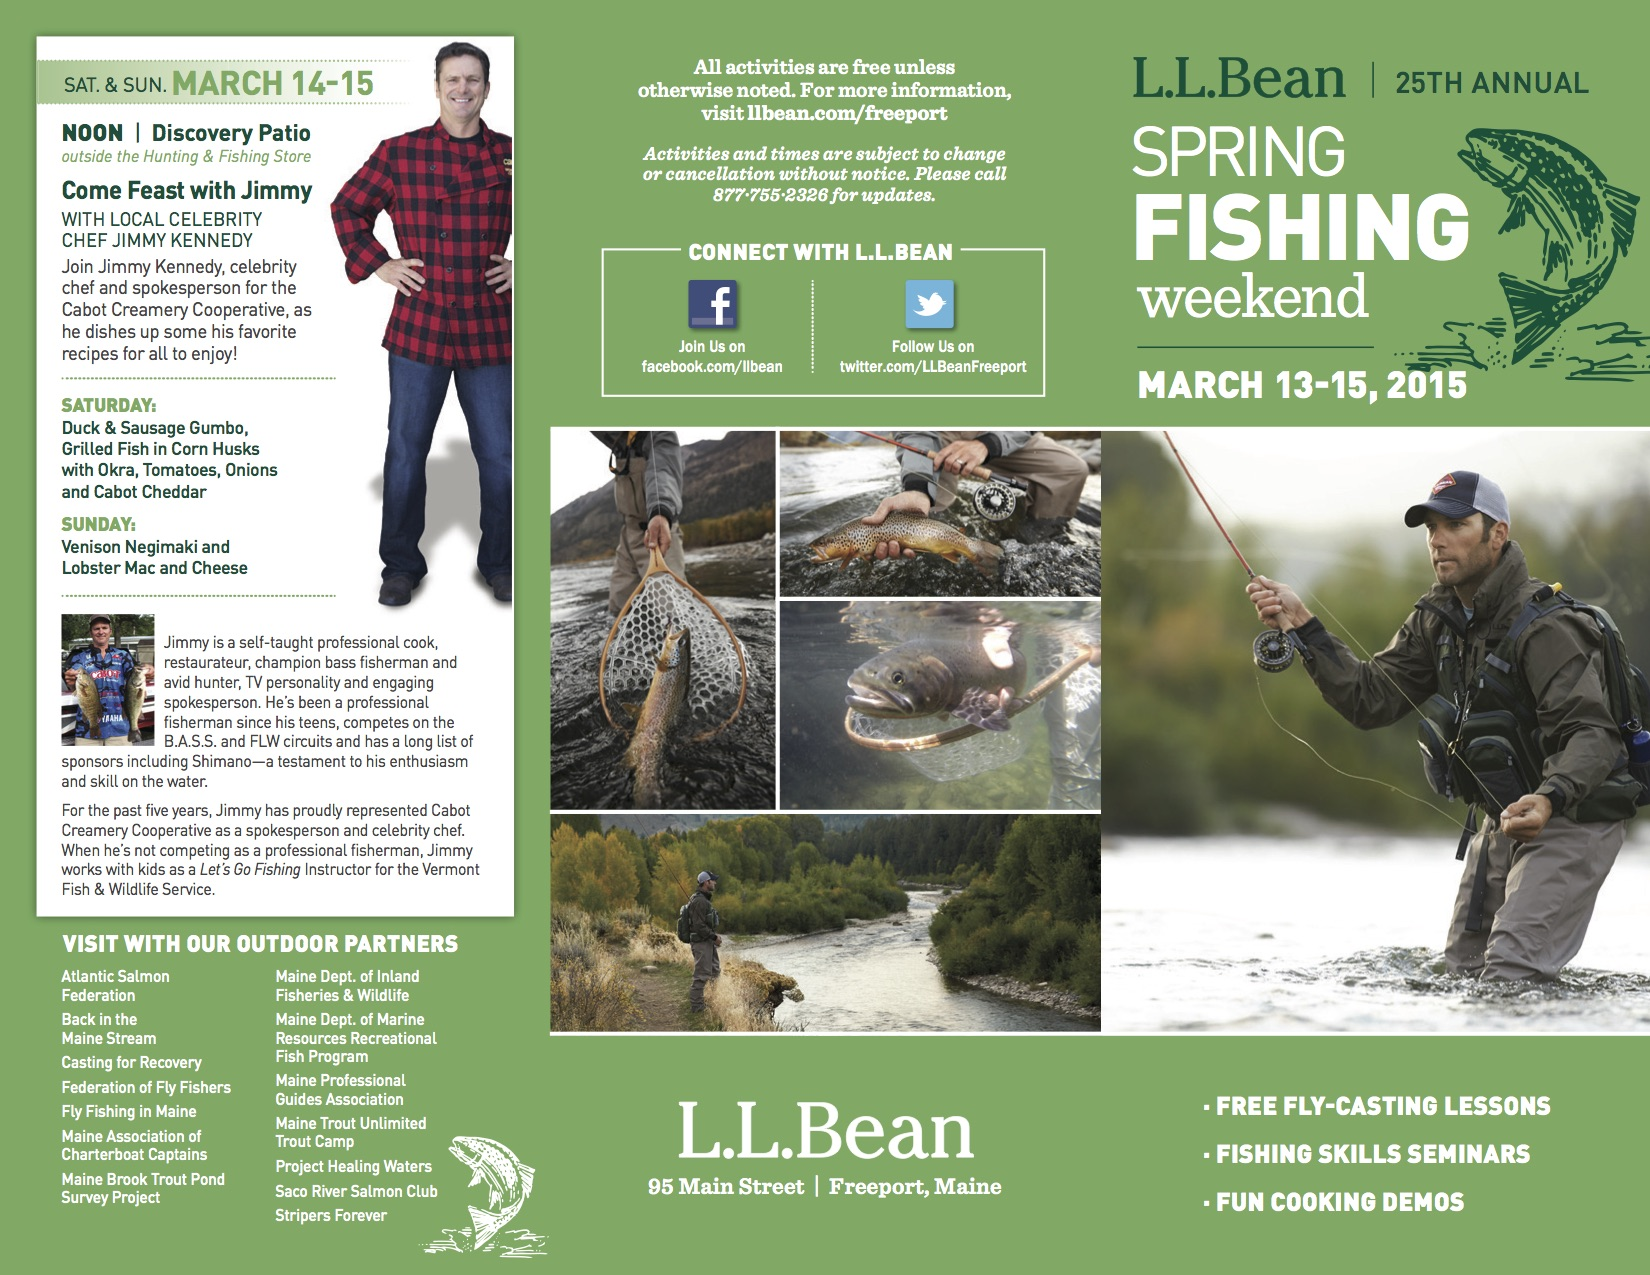 2015 L.L.Bean Spring Fishing Weekend Schedule_DRAFT.jpg